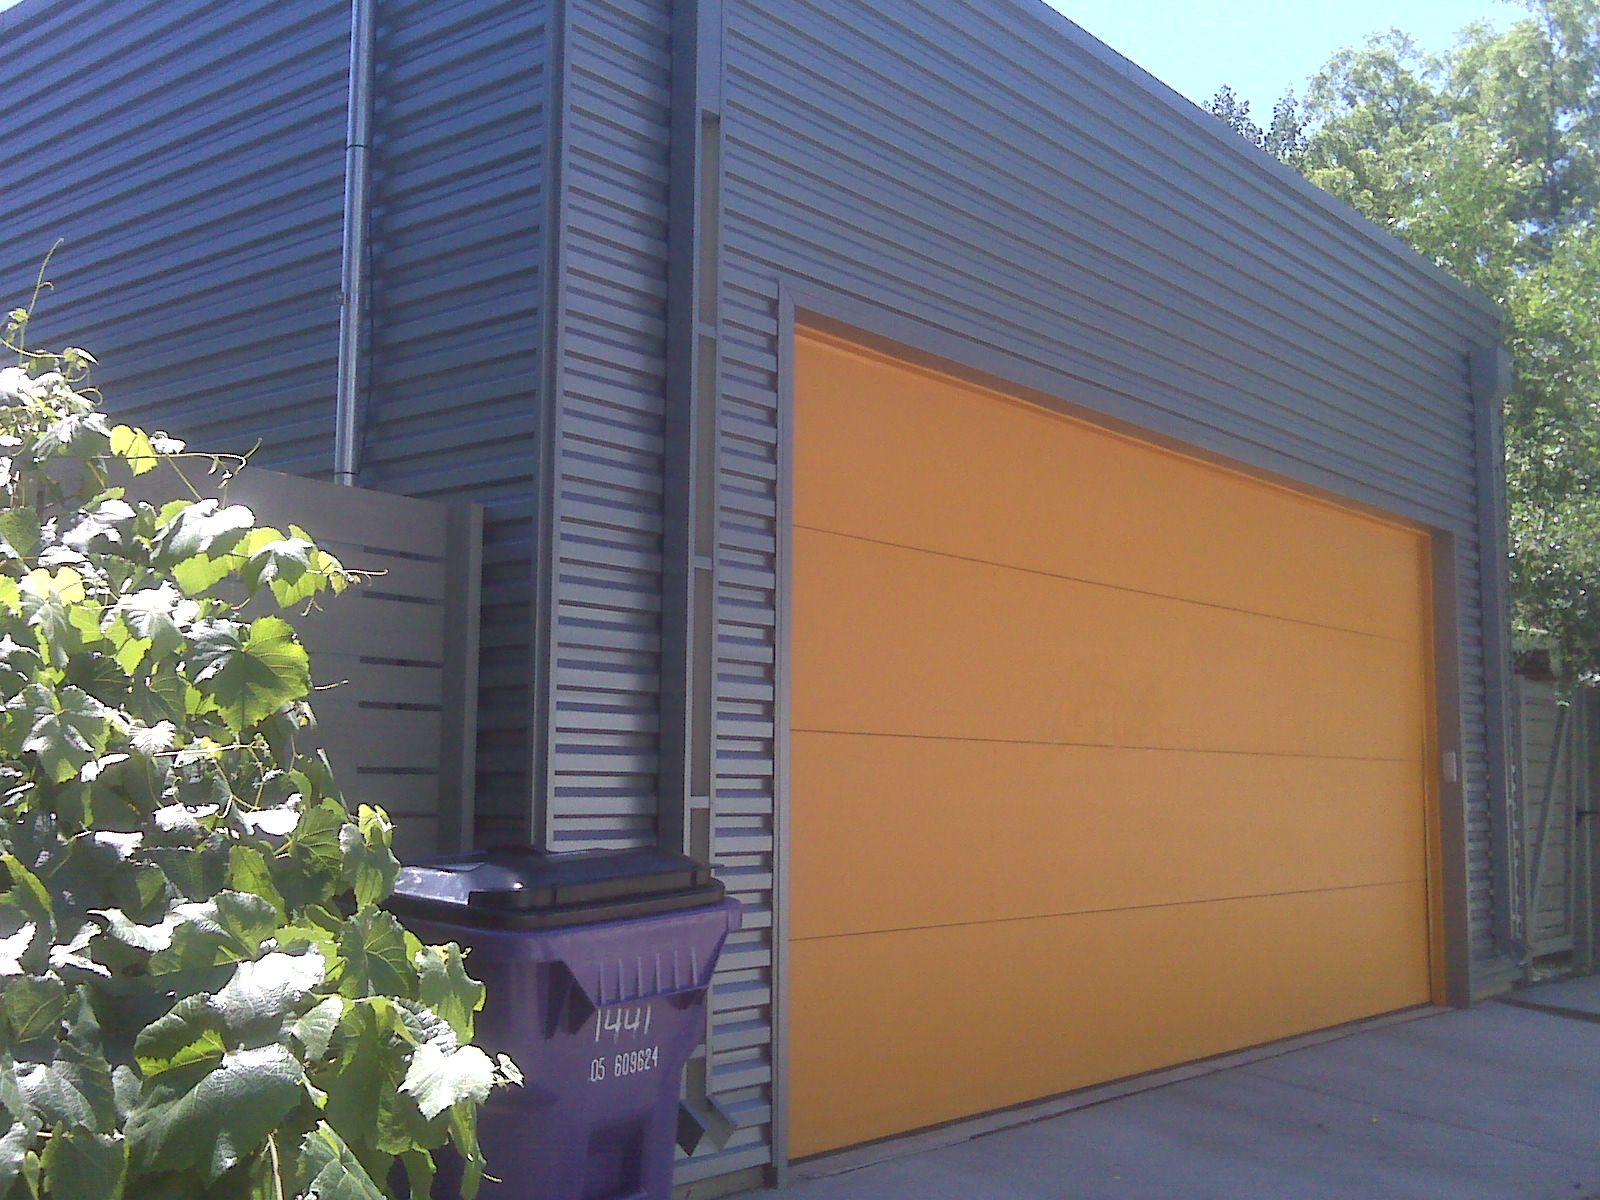 Galvalume Metal Siding By Berridge Inc Products I Love